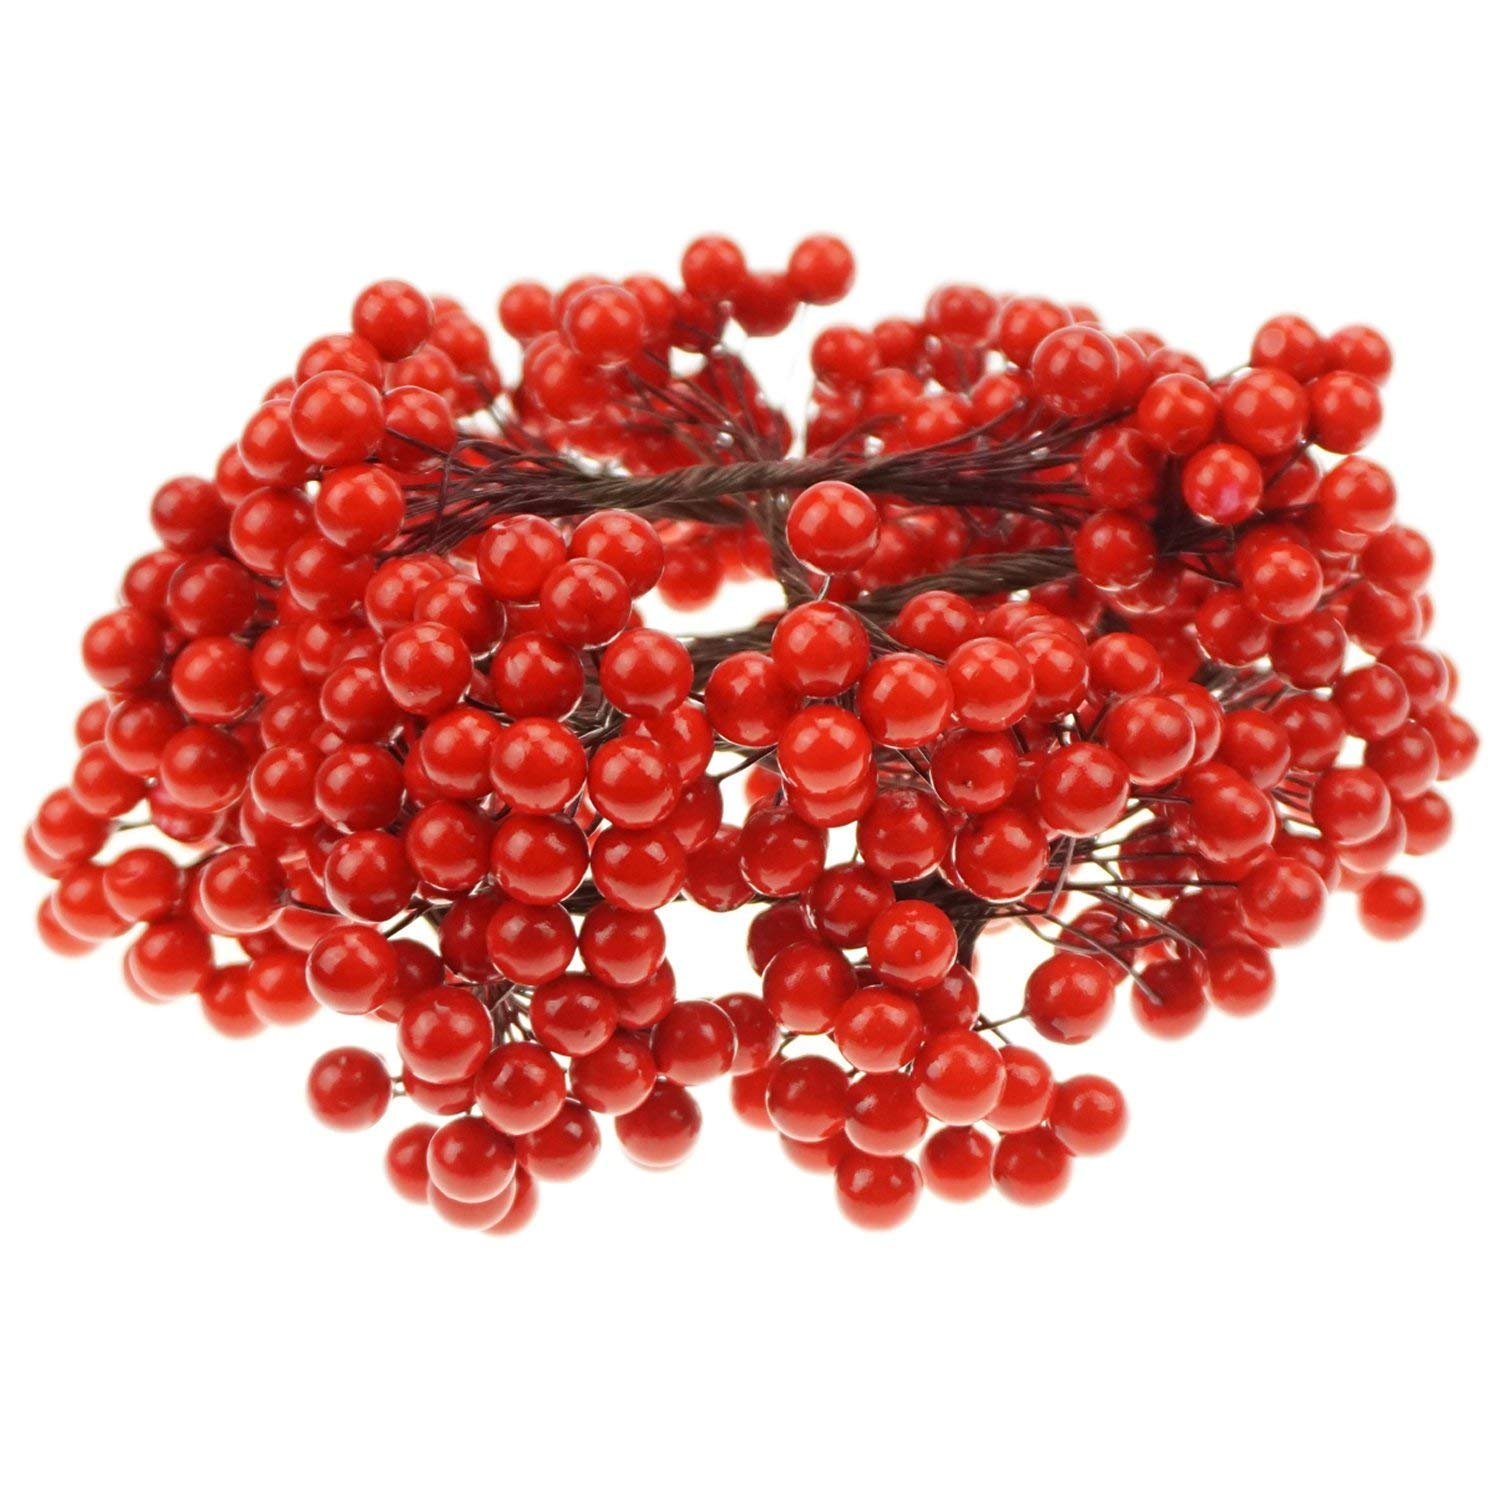 Ddfly 100pcs Artificial Red Holly Berries 10mm Mini Fake Fruit Berries Decor for Home Christmas Holiday Decorations